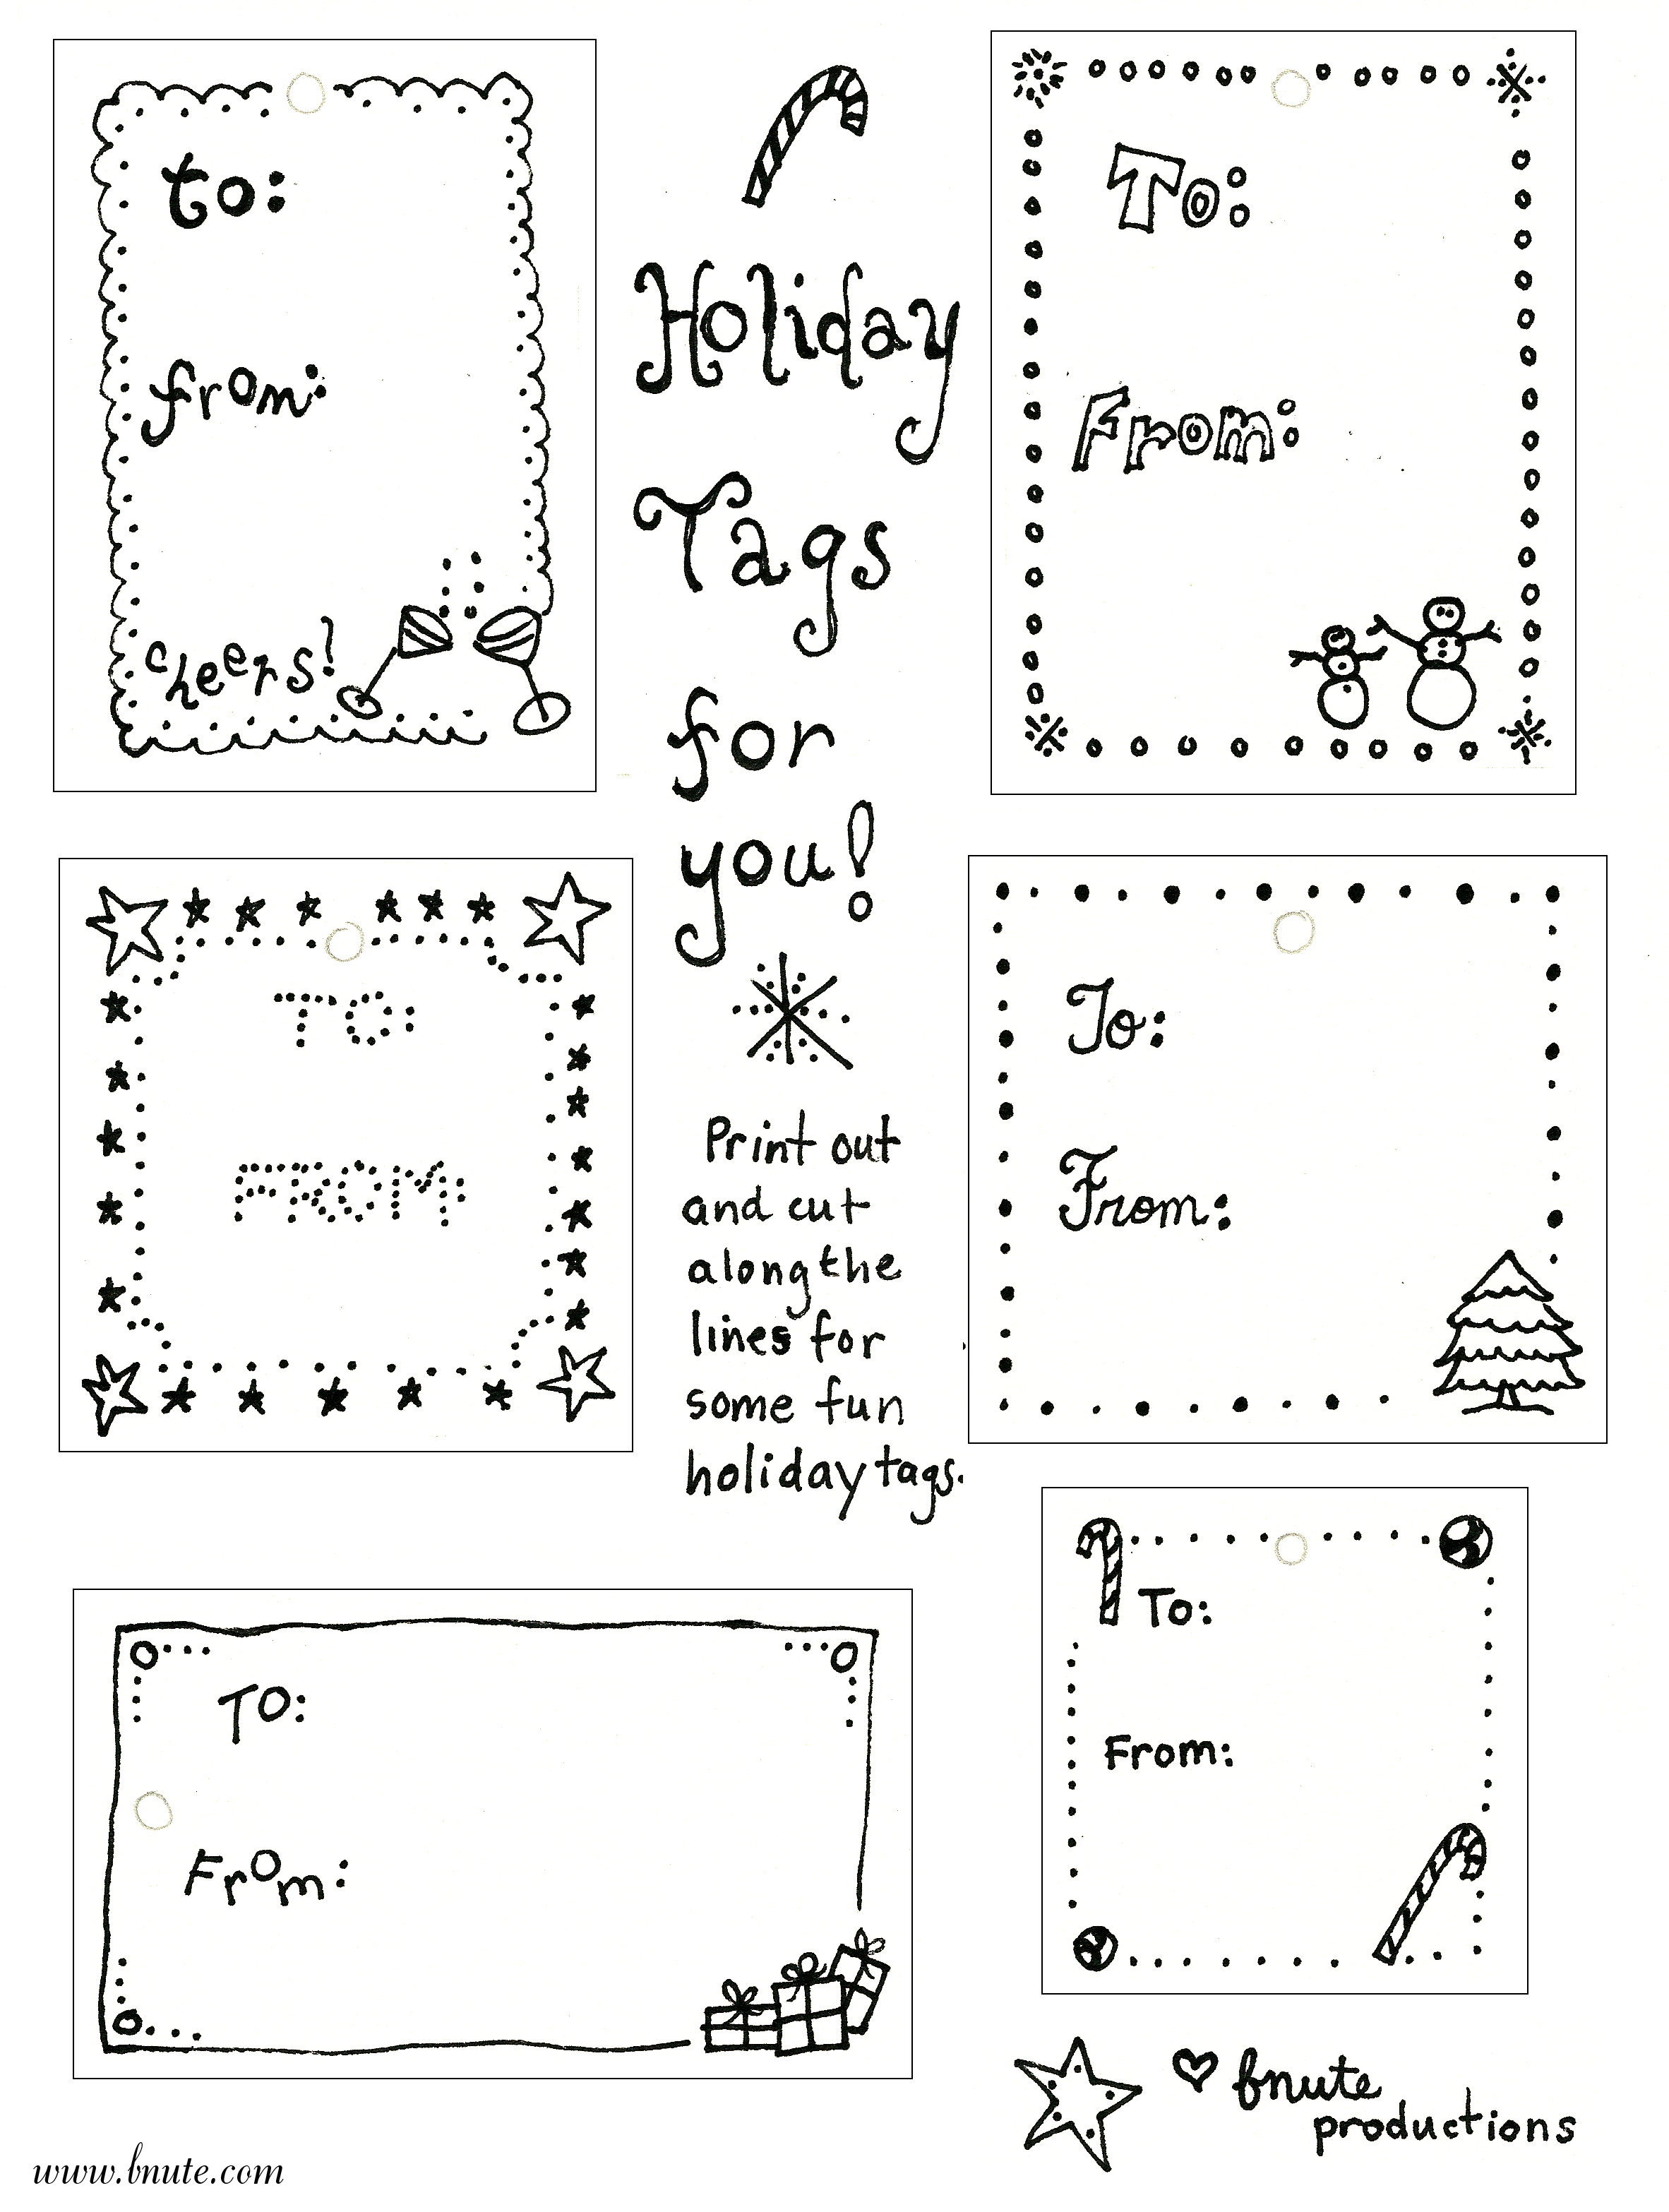 bnute productions: Printable Holiday Tags for that Last Minute ...